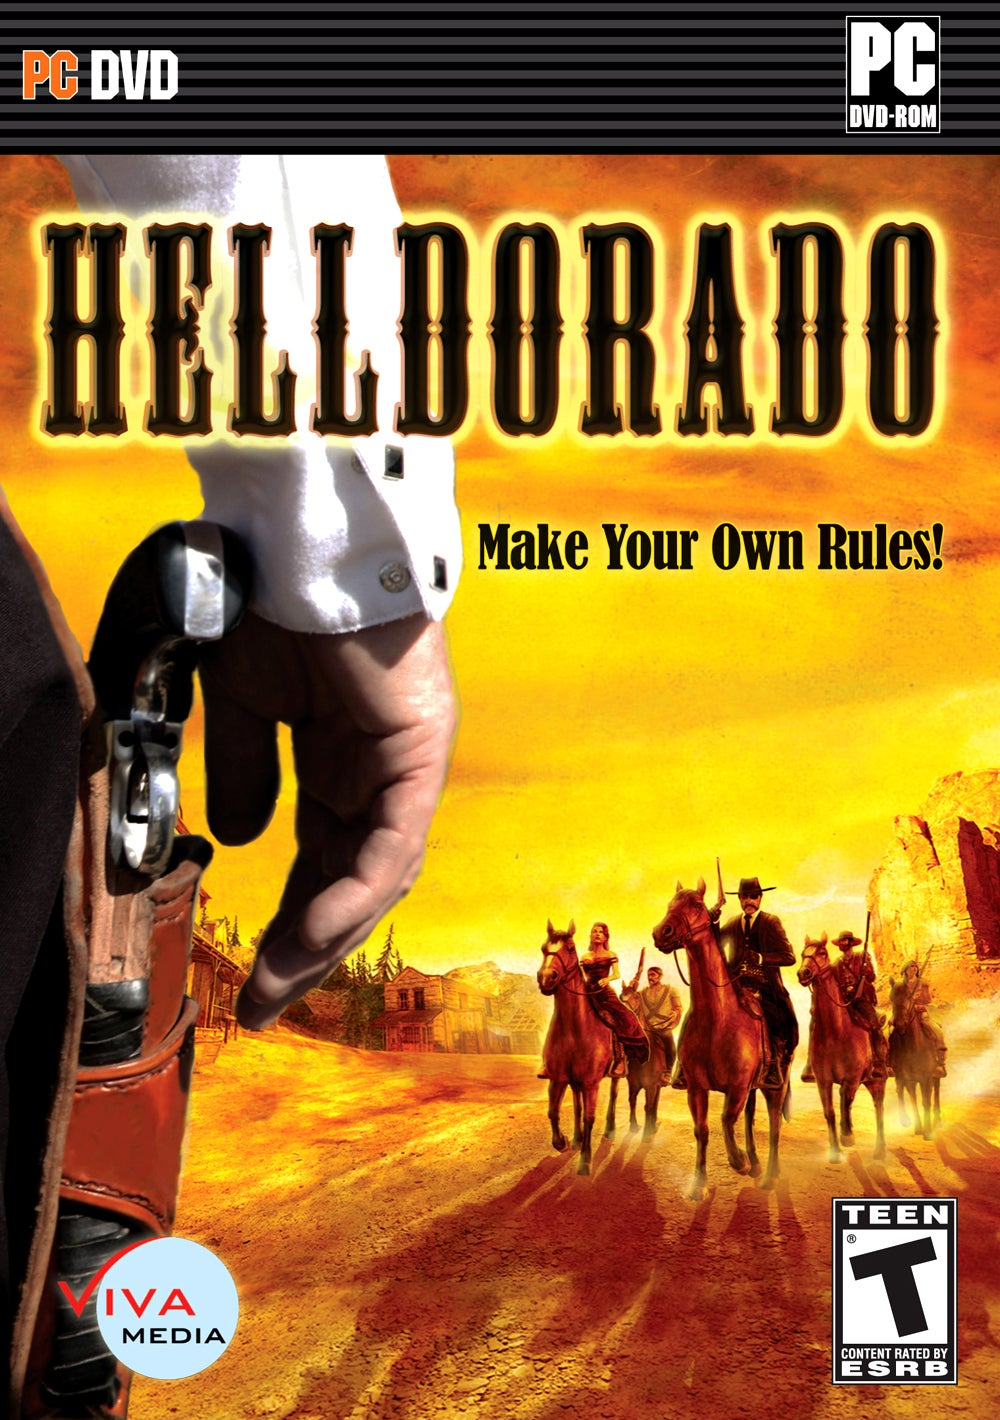 Helldorado Review IGN